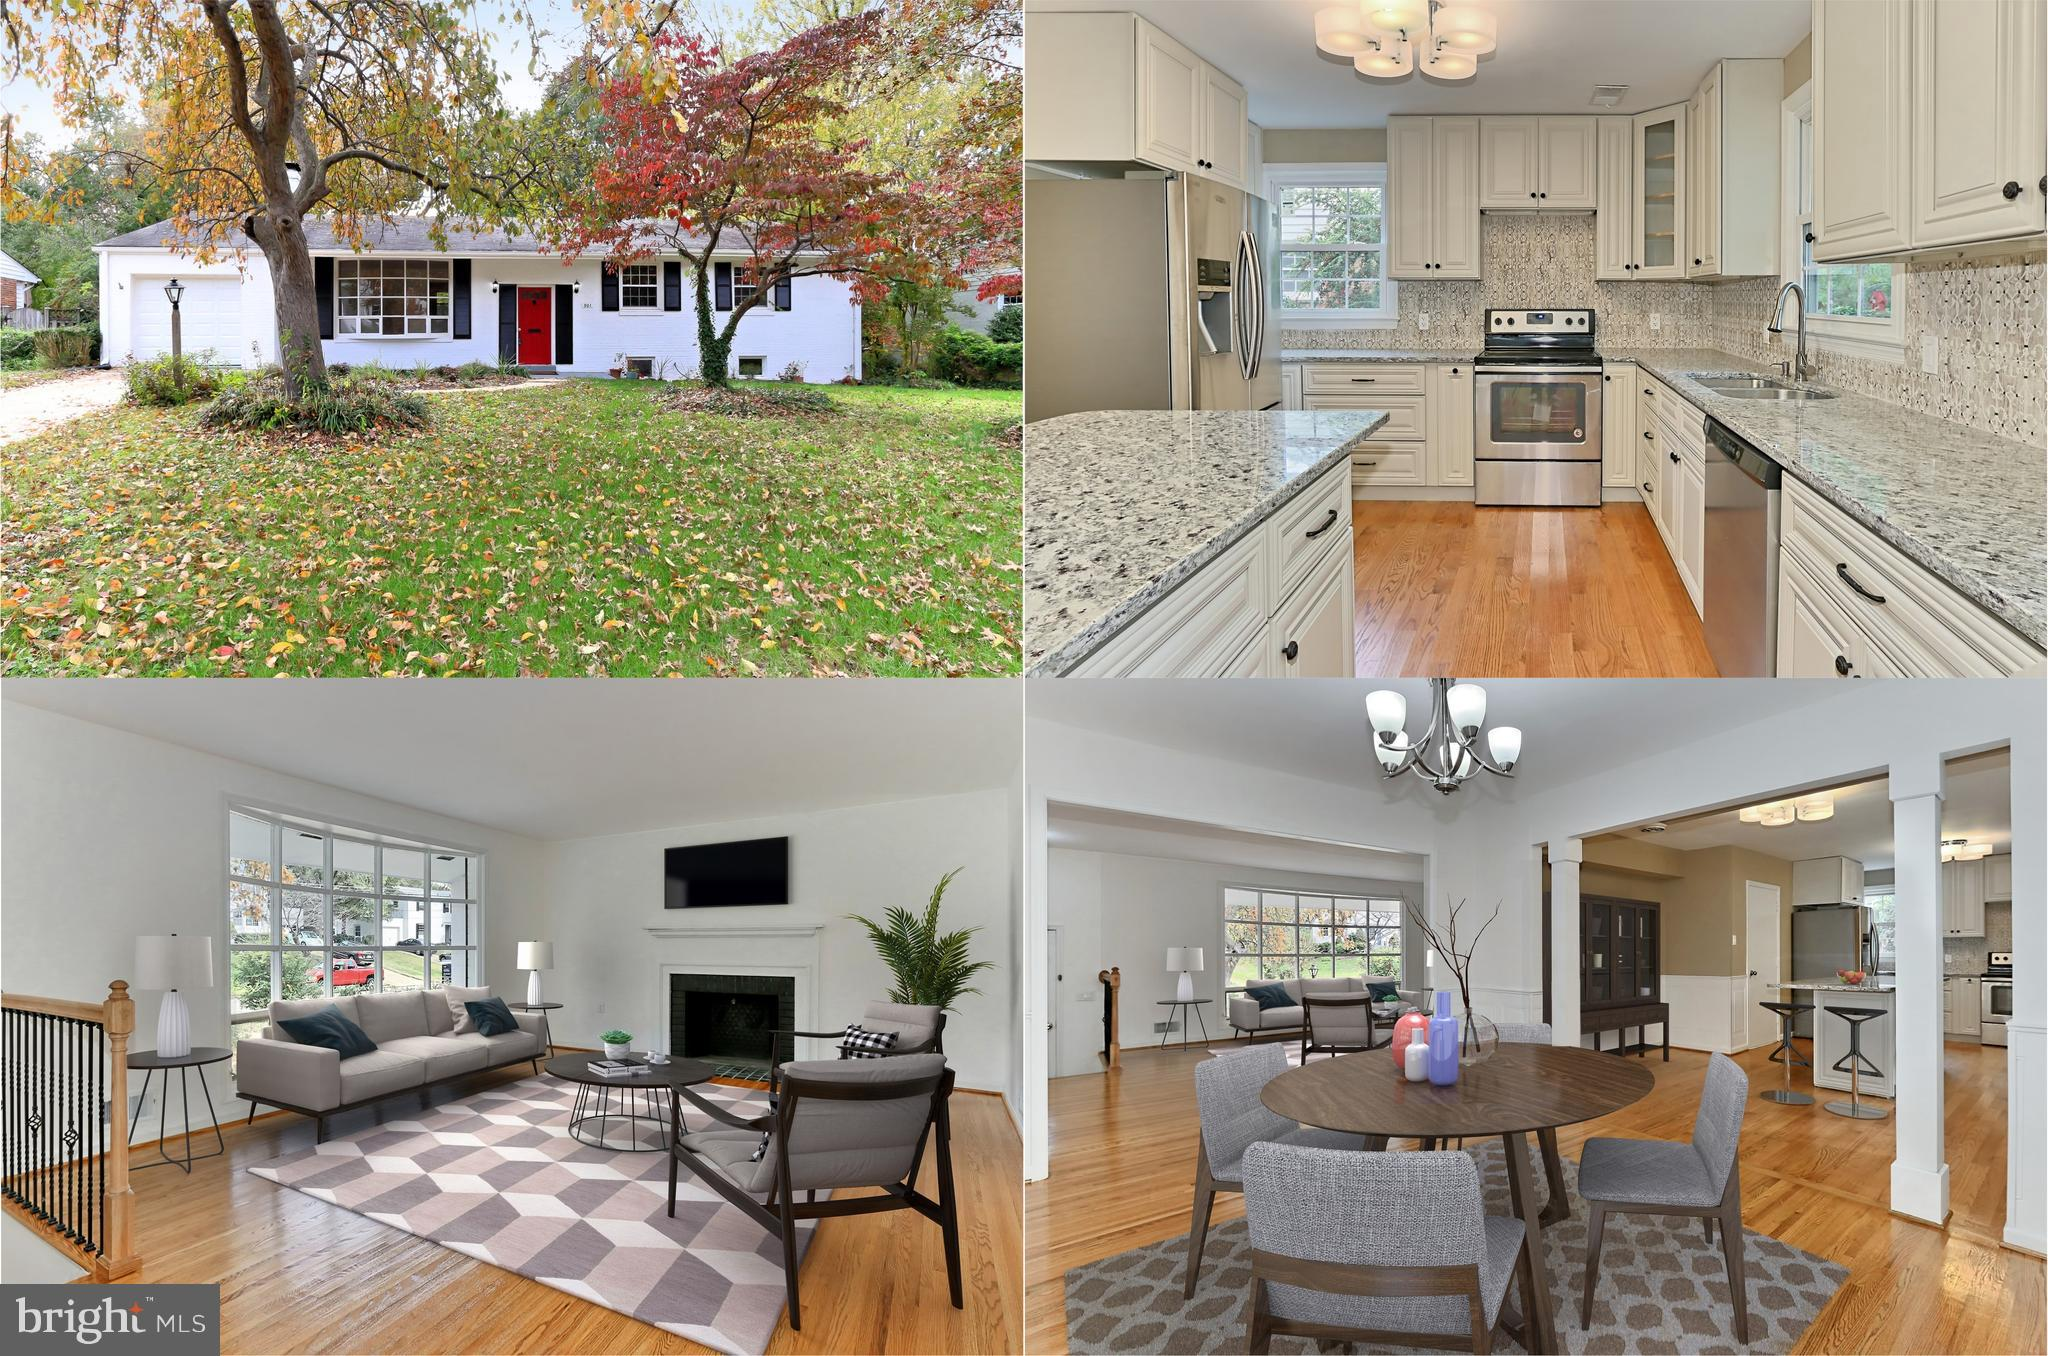 Beautiful, completely renovated 4 BR, 3 BA home with loads up upgrades! Refinished hardwds, new iron railing, lighting, more! Living rm w/bay window & wood burning FP opens to formal dining rm. Remodeled eat in kitchen w/new cabinets, granite, backsplash & SS appls leads to lovely yard & garden. Renovated baths! MBR w/full BA. Finished walk up LL has huge family rm w/FP, full bath, den + bonus rm!